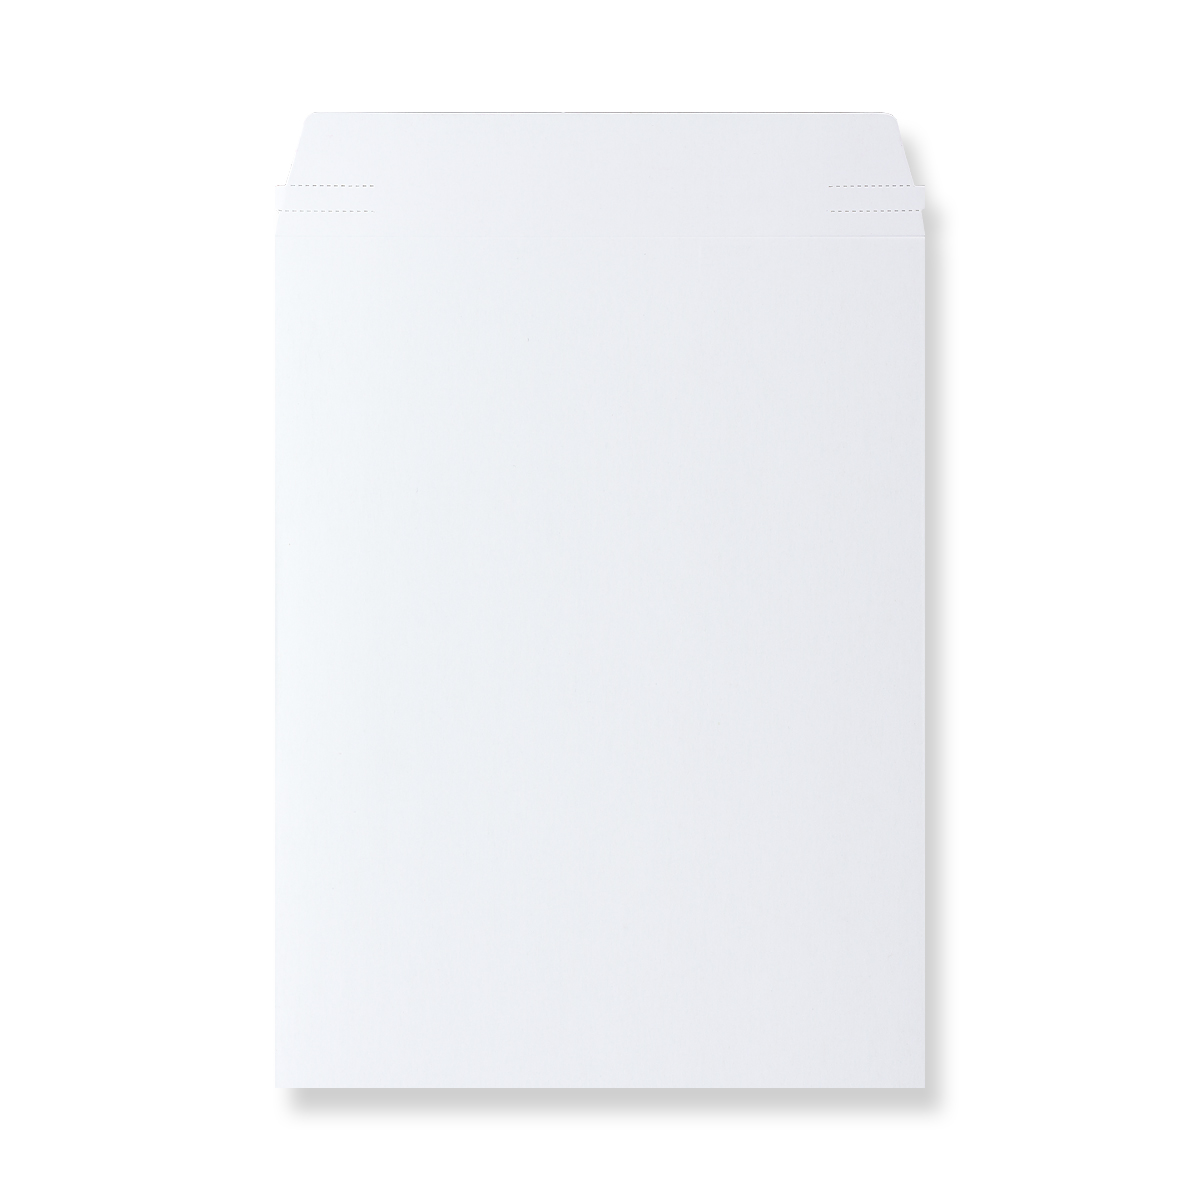 381 x 254mm WHITE ALL BOARD ENVELOPES